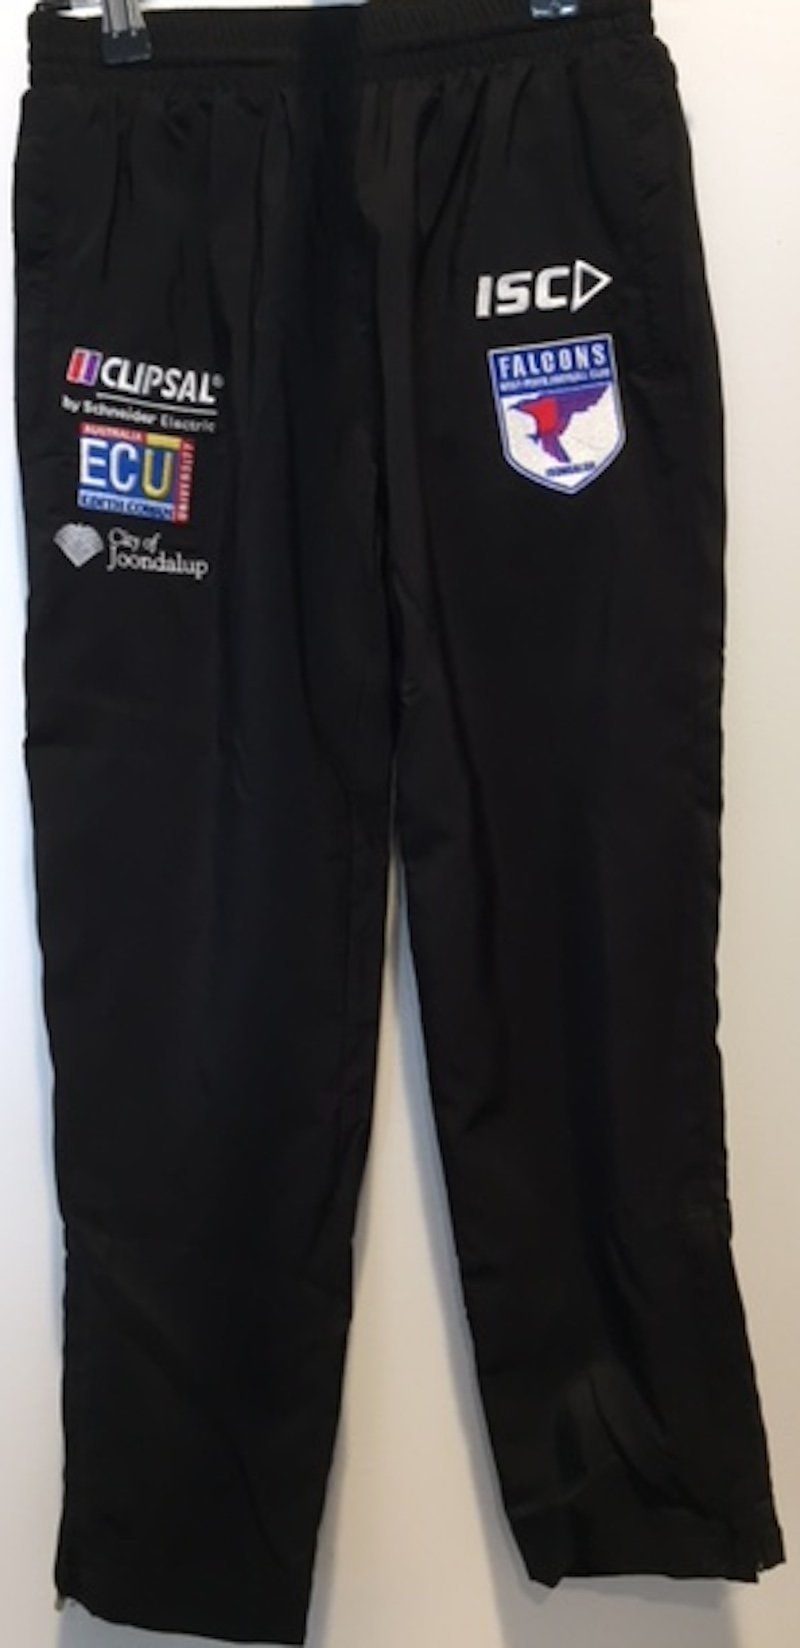 2018 Track Pants - Youth Showerproof